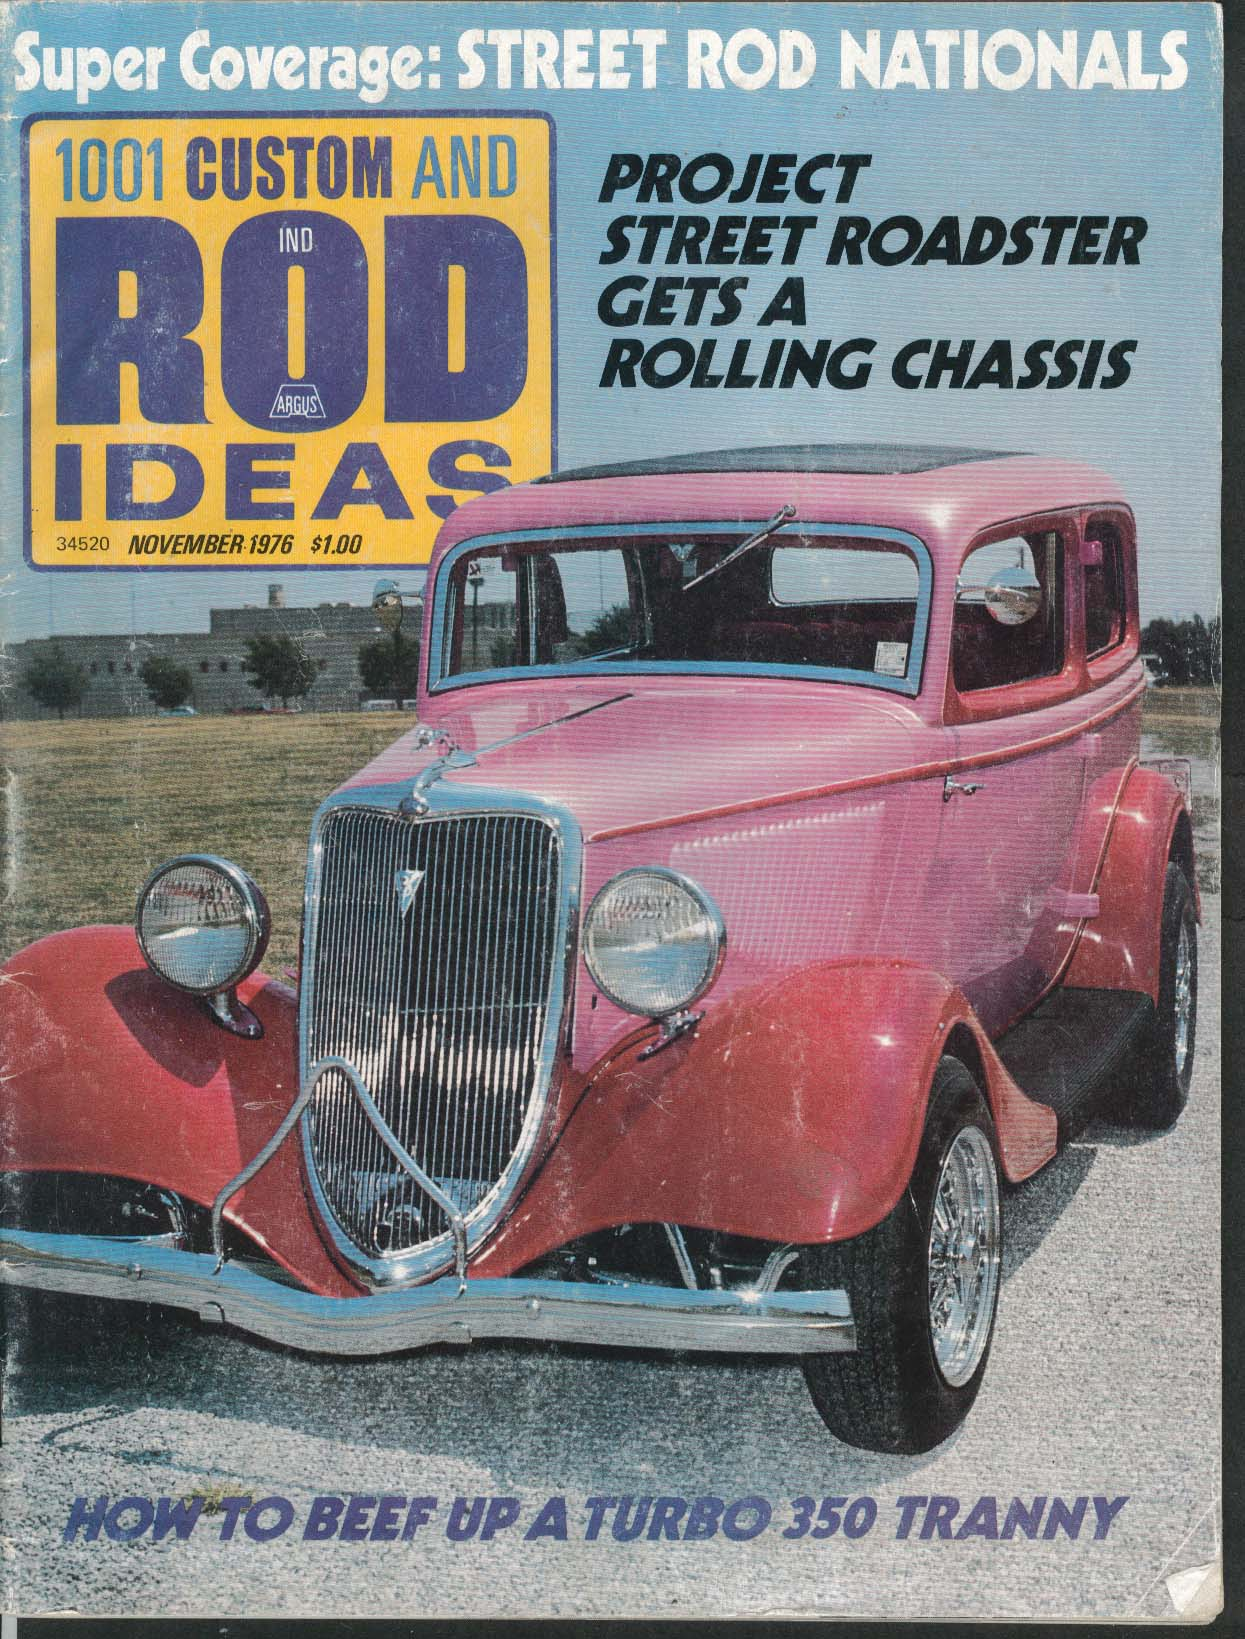 1001 CUSTOM & ROD IDEAS Street Rod Nationals Roadster Turbo 350 Tranny 11 1976